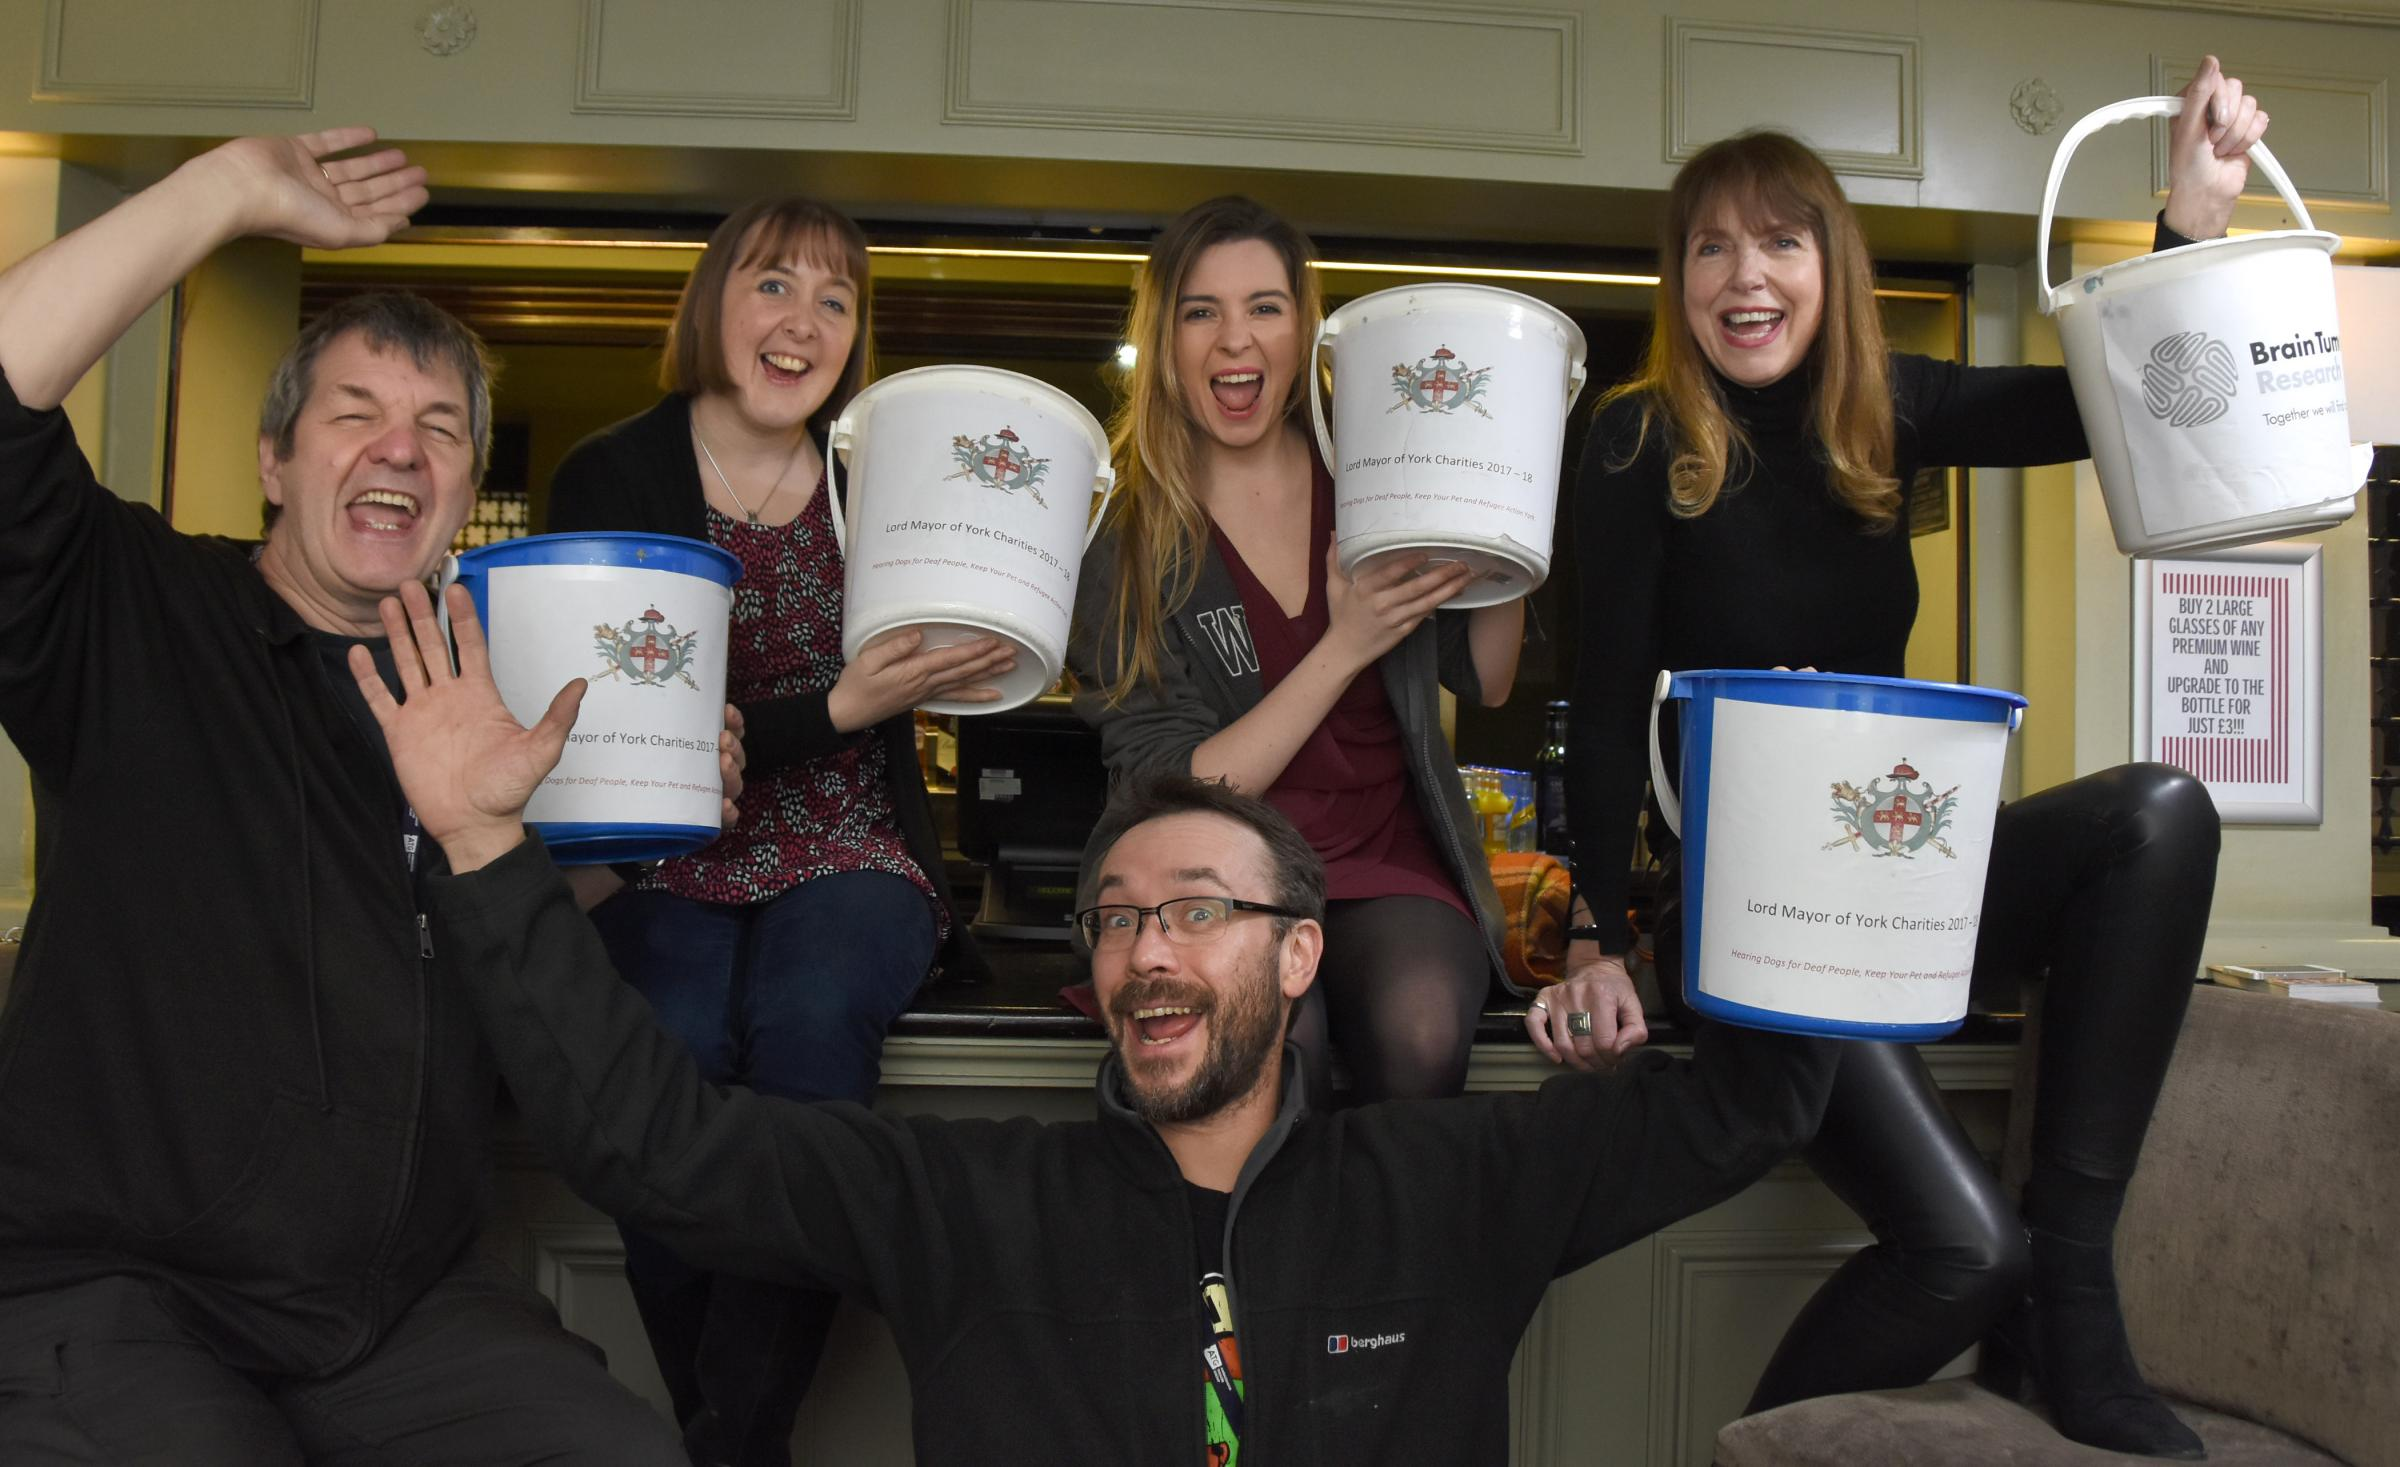 Grand Opera House staff members with their charity collection buckets: Gordon Glover, left, Clare O'Connor, Megan Conway, Celestine Dubruel and, front, Magnus Leslie. Picture: David Harrison/Grand Opera House